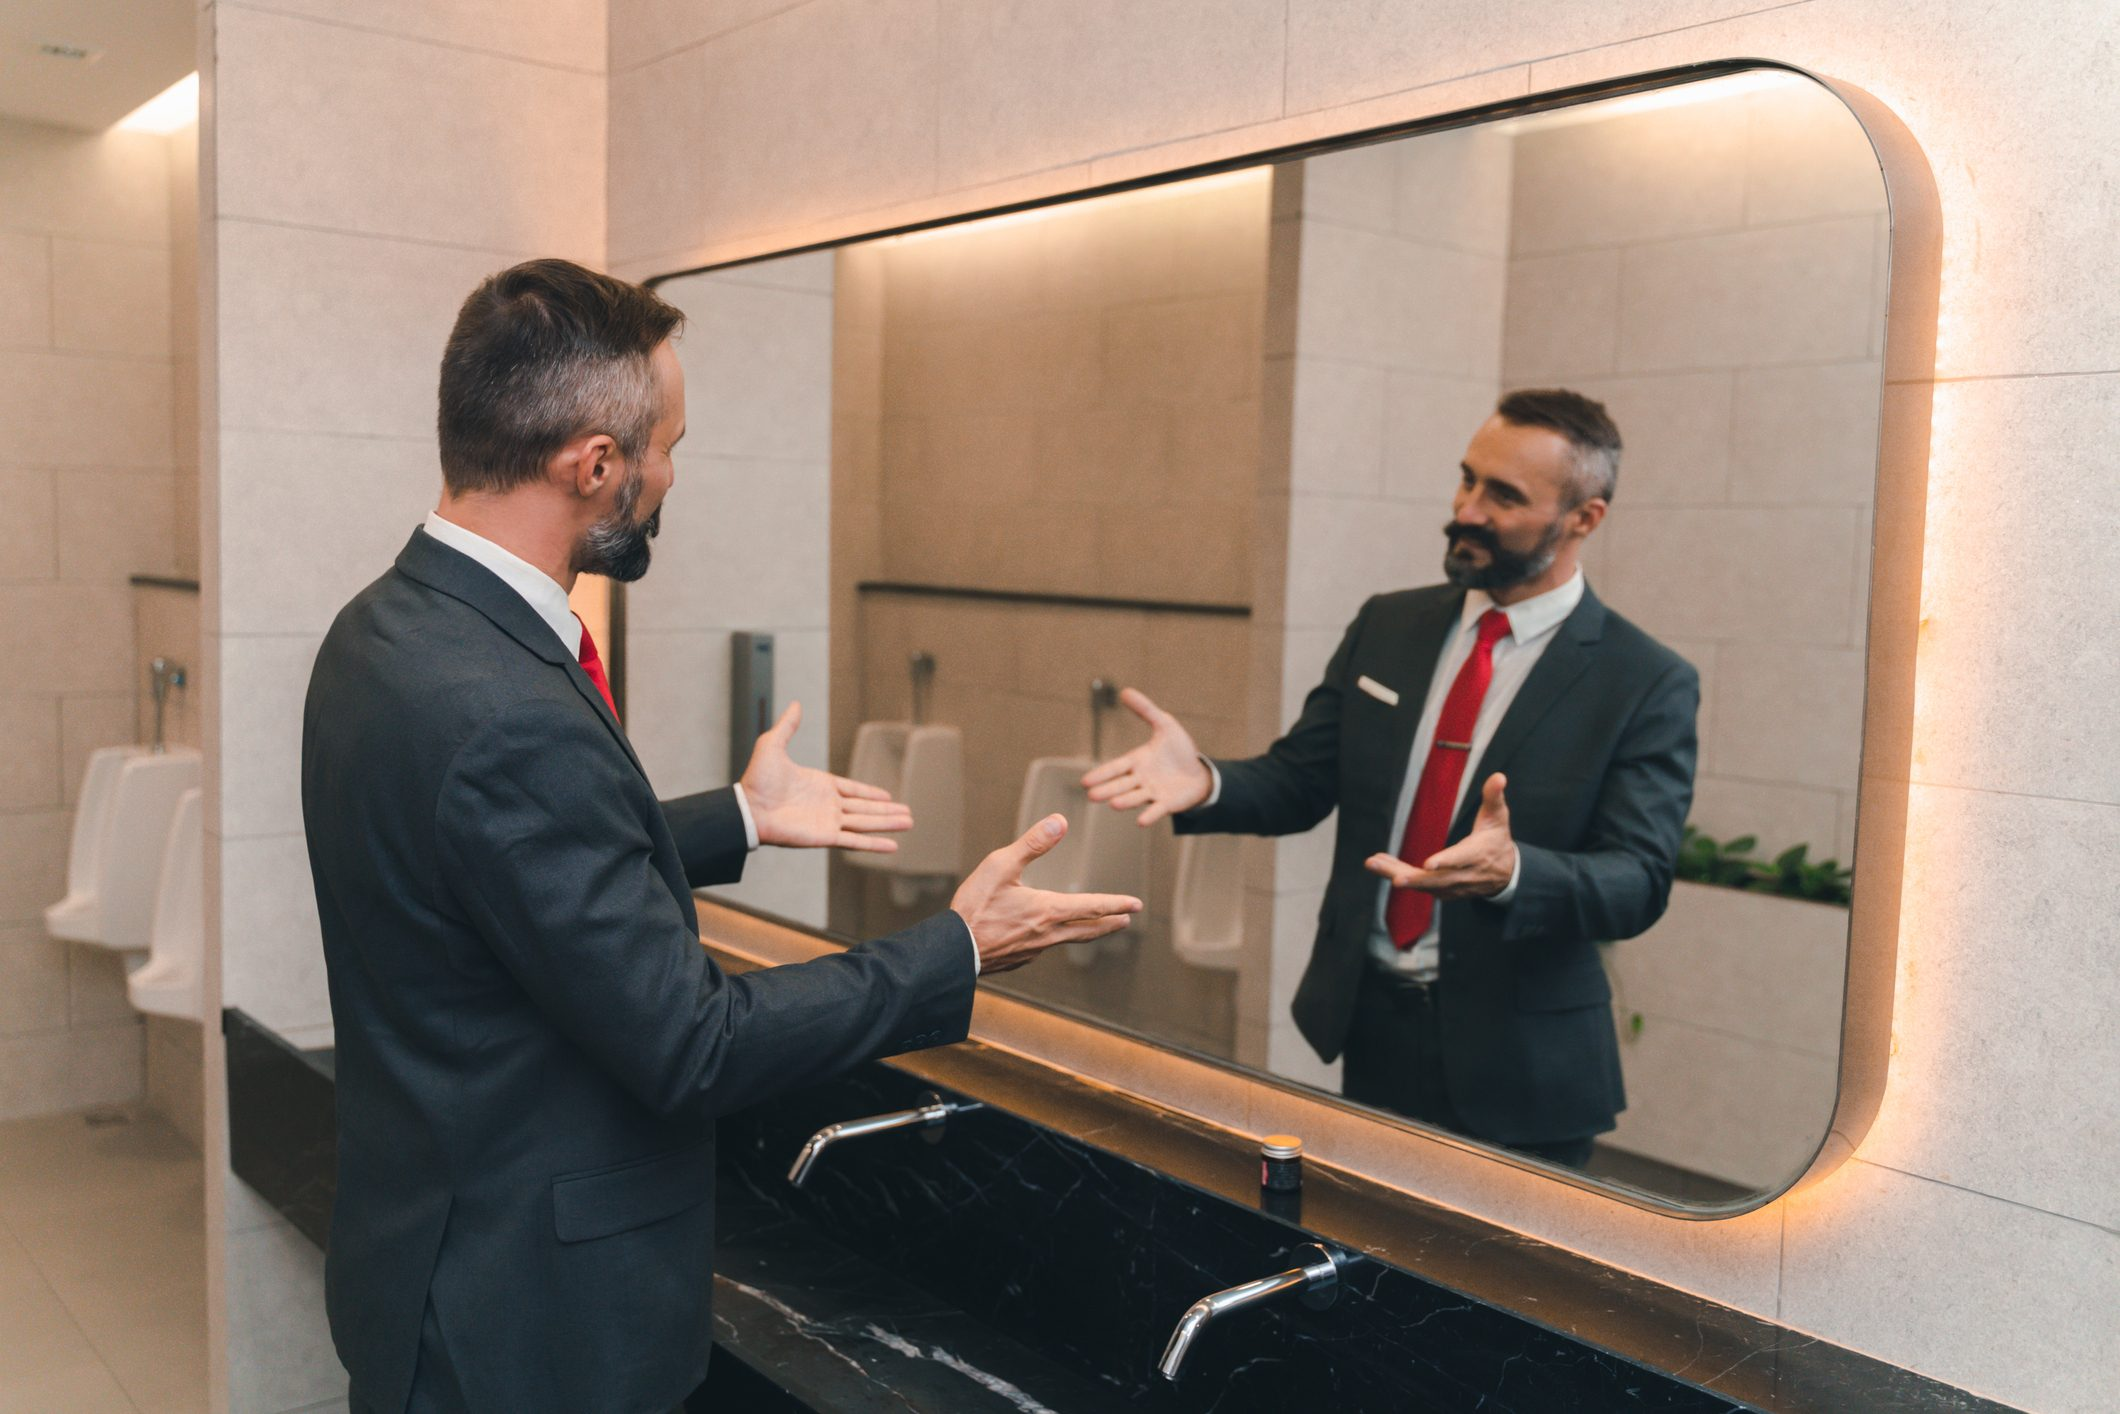 man business suit talking to himself in the bathroom mirror